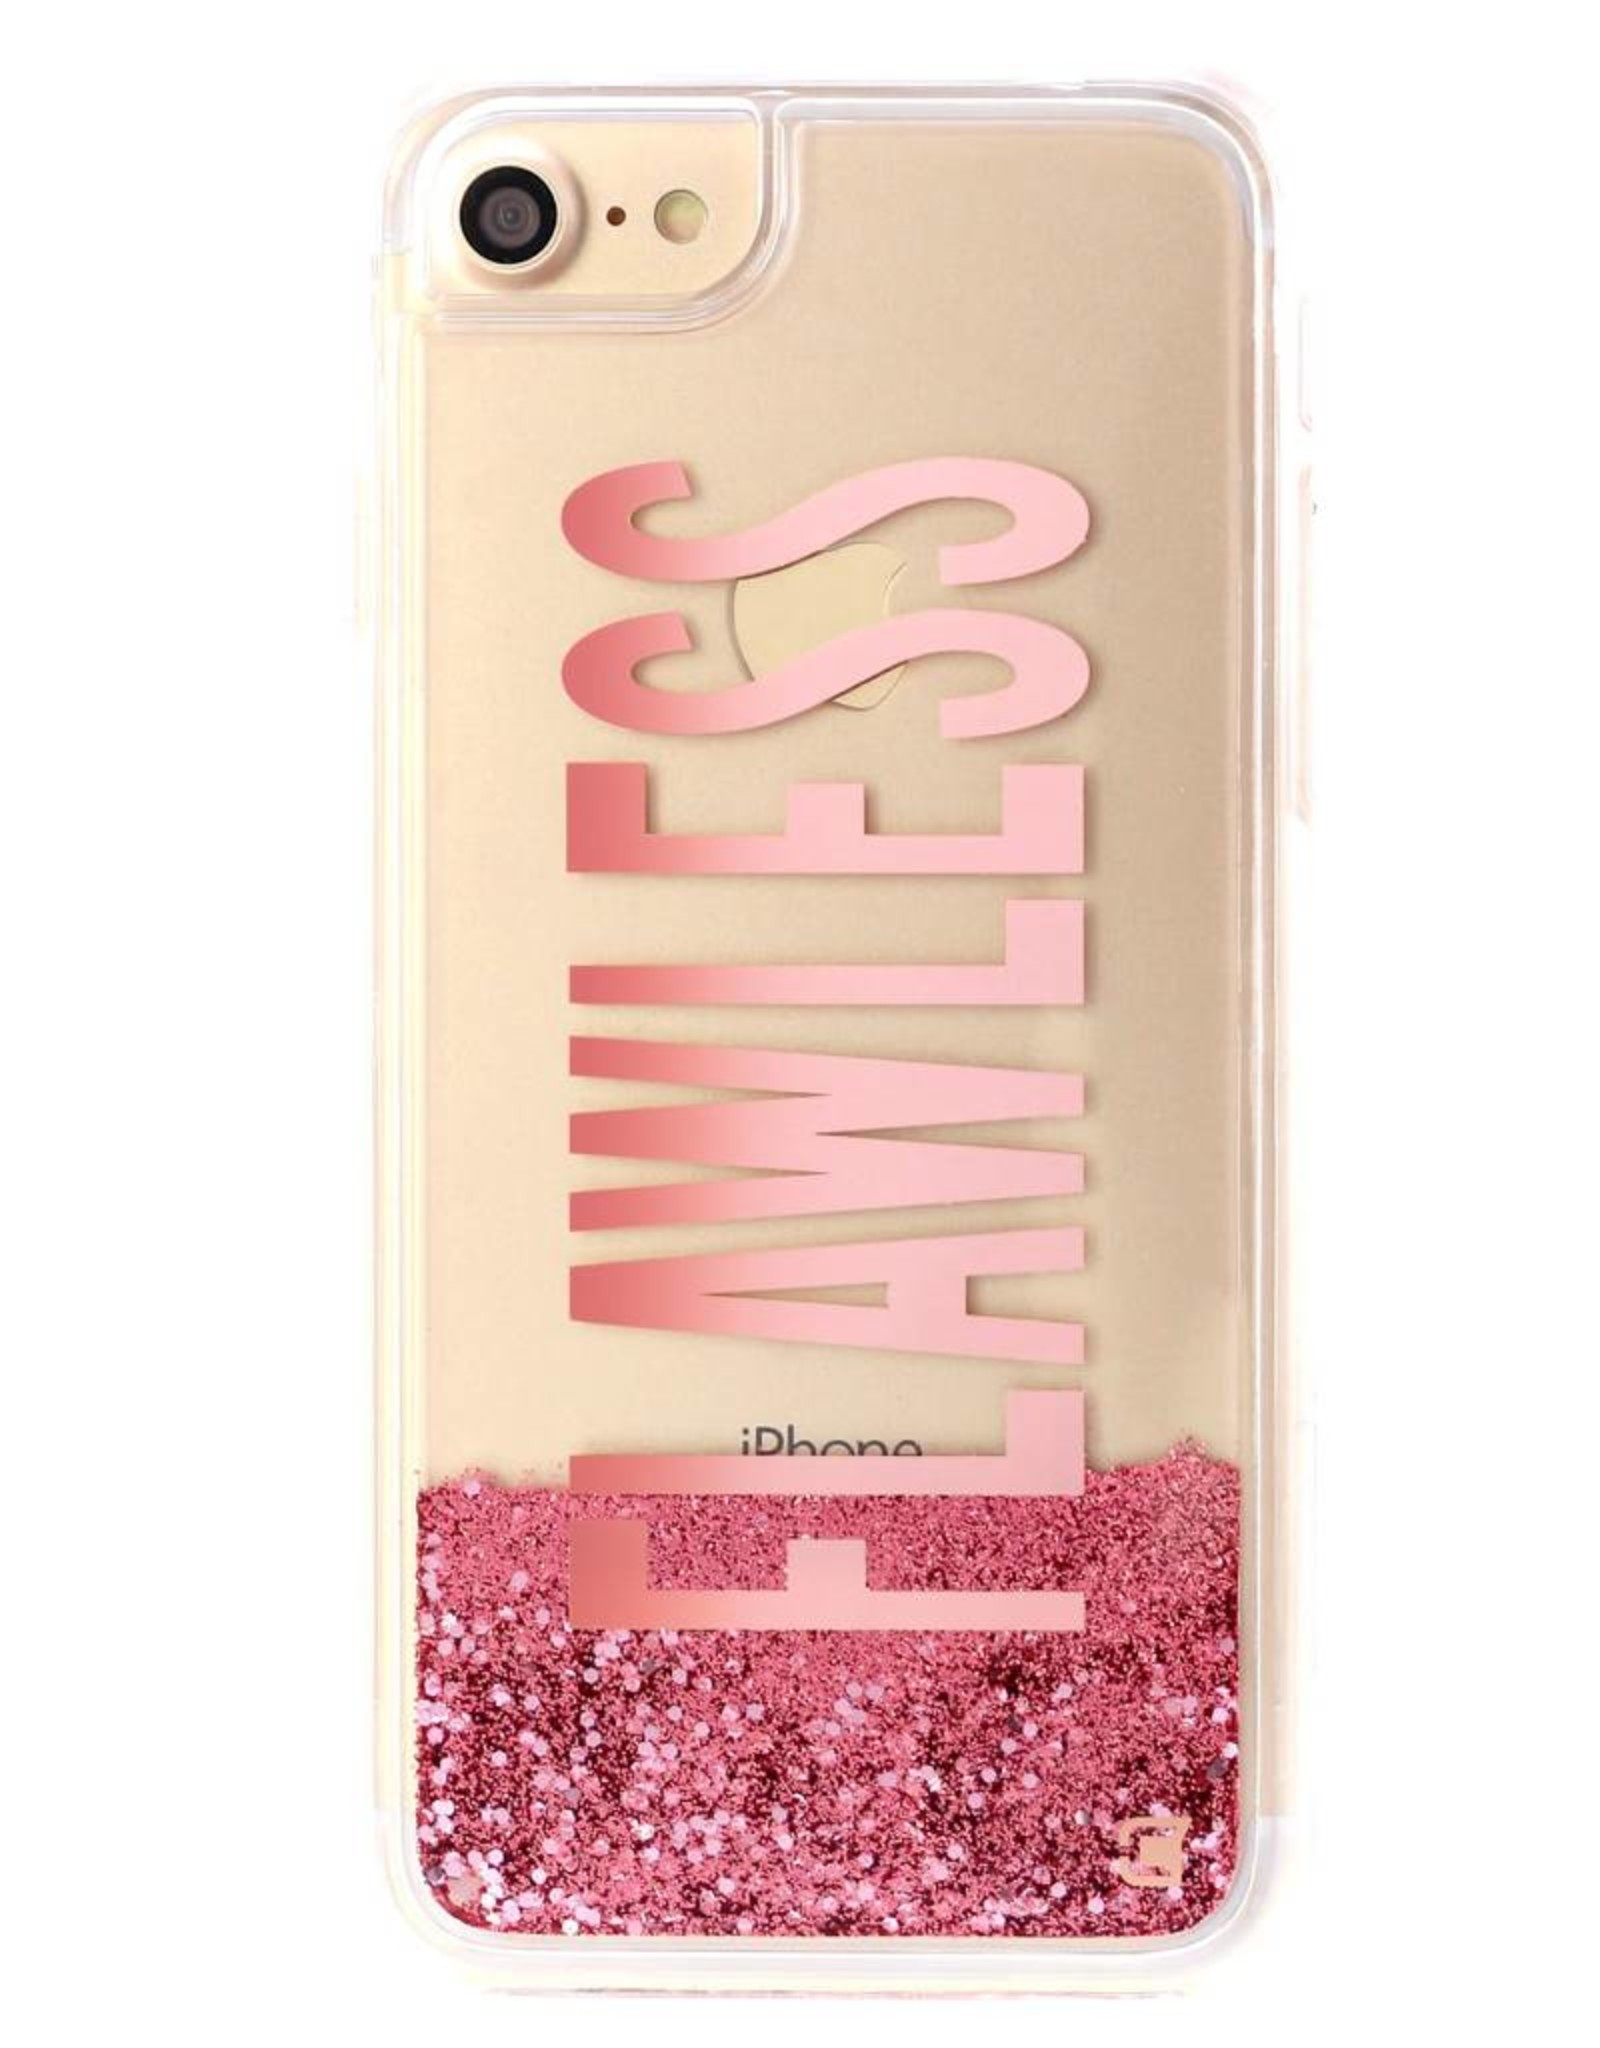 Caseco /// Caseco| iPhone 8/7/6/6s Liquid Glitter Case ''Flawless'' | WXLG-iP7-FLW